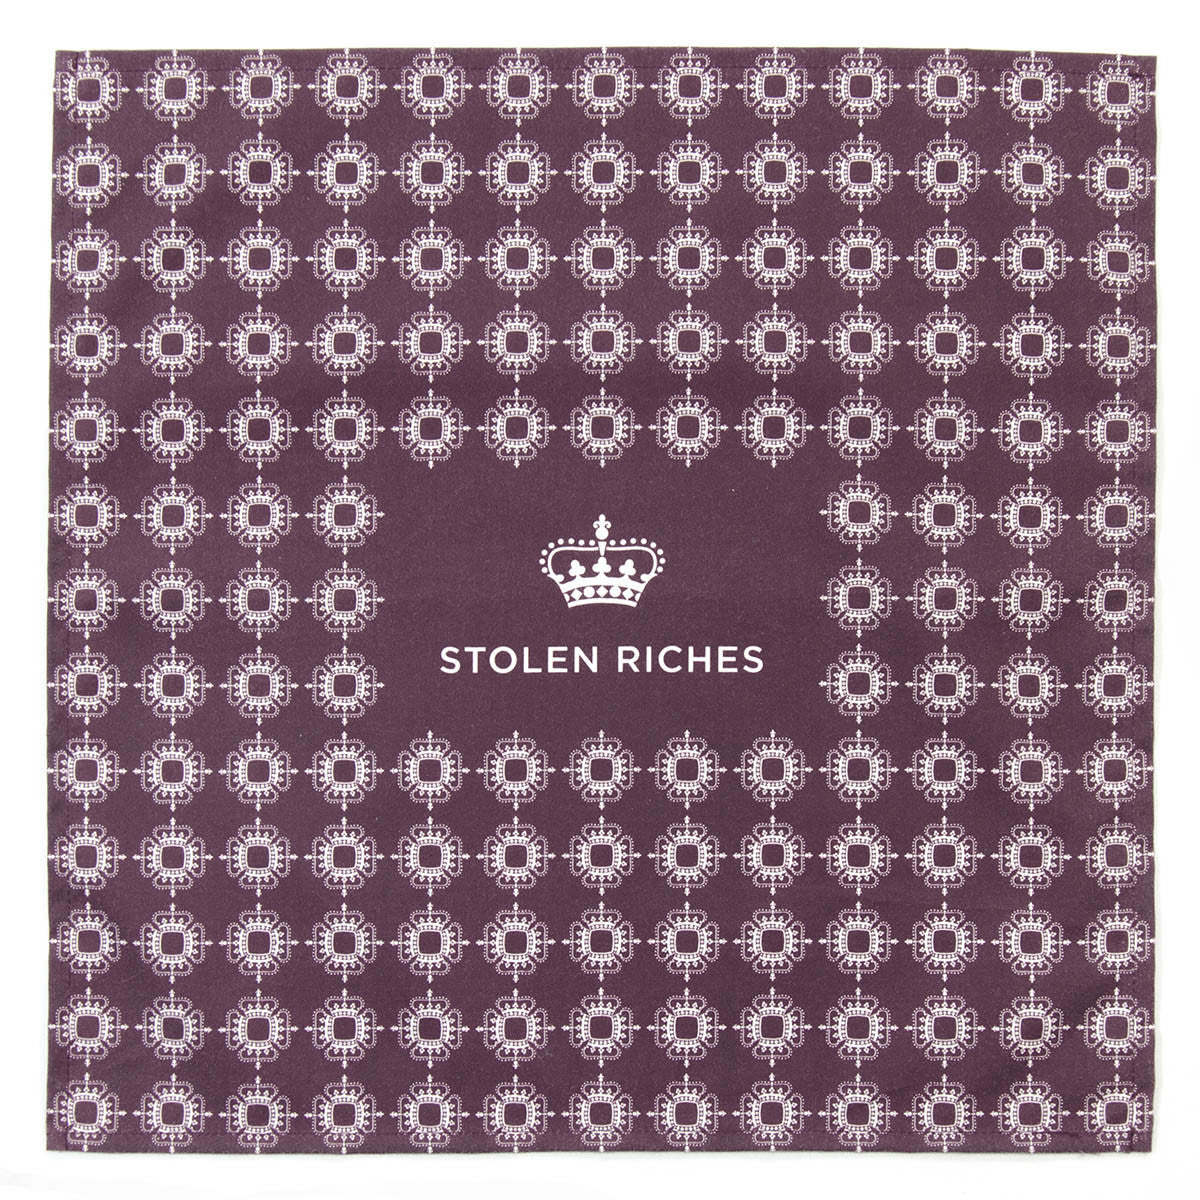 "Der Alte Burgundy - Crown Pattern Pocket Square (13""x13"") - Stolen Riches / CA"